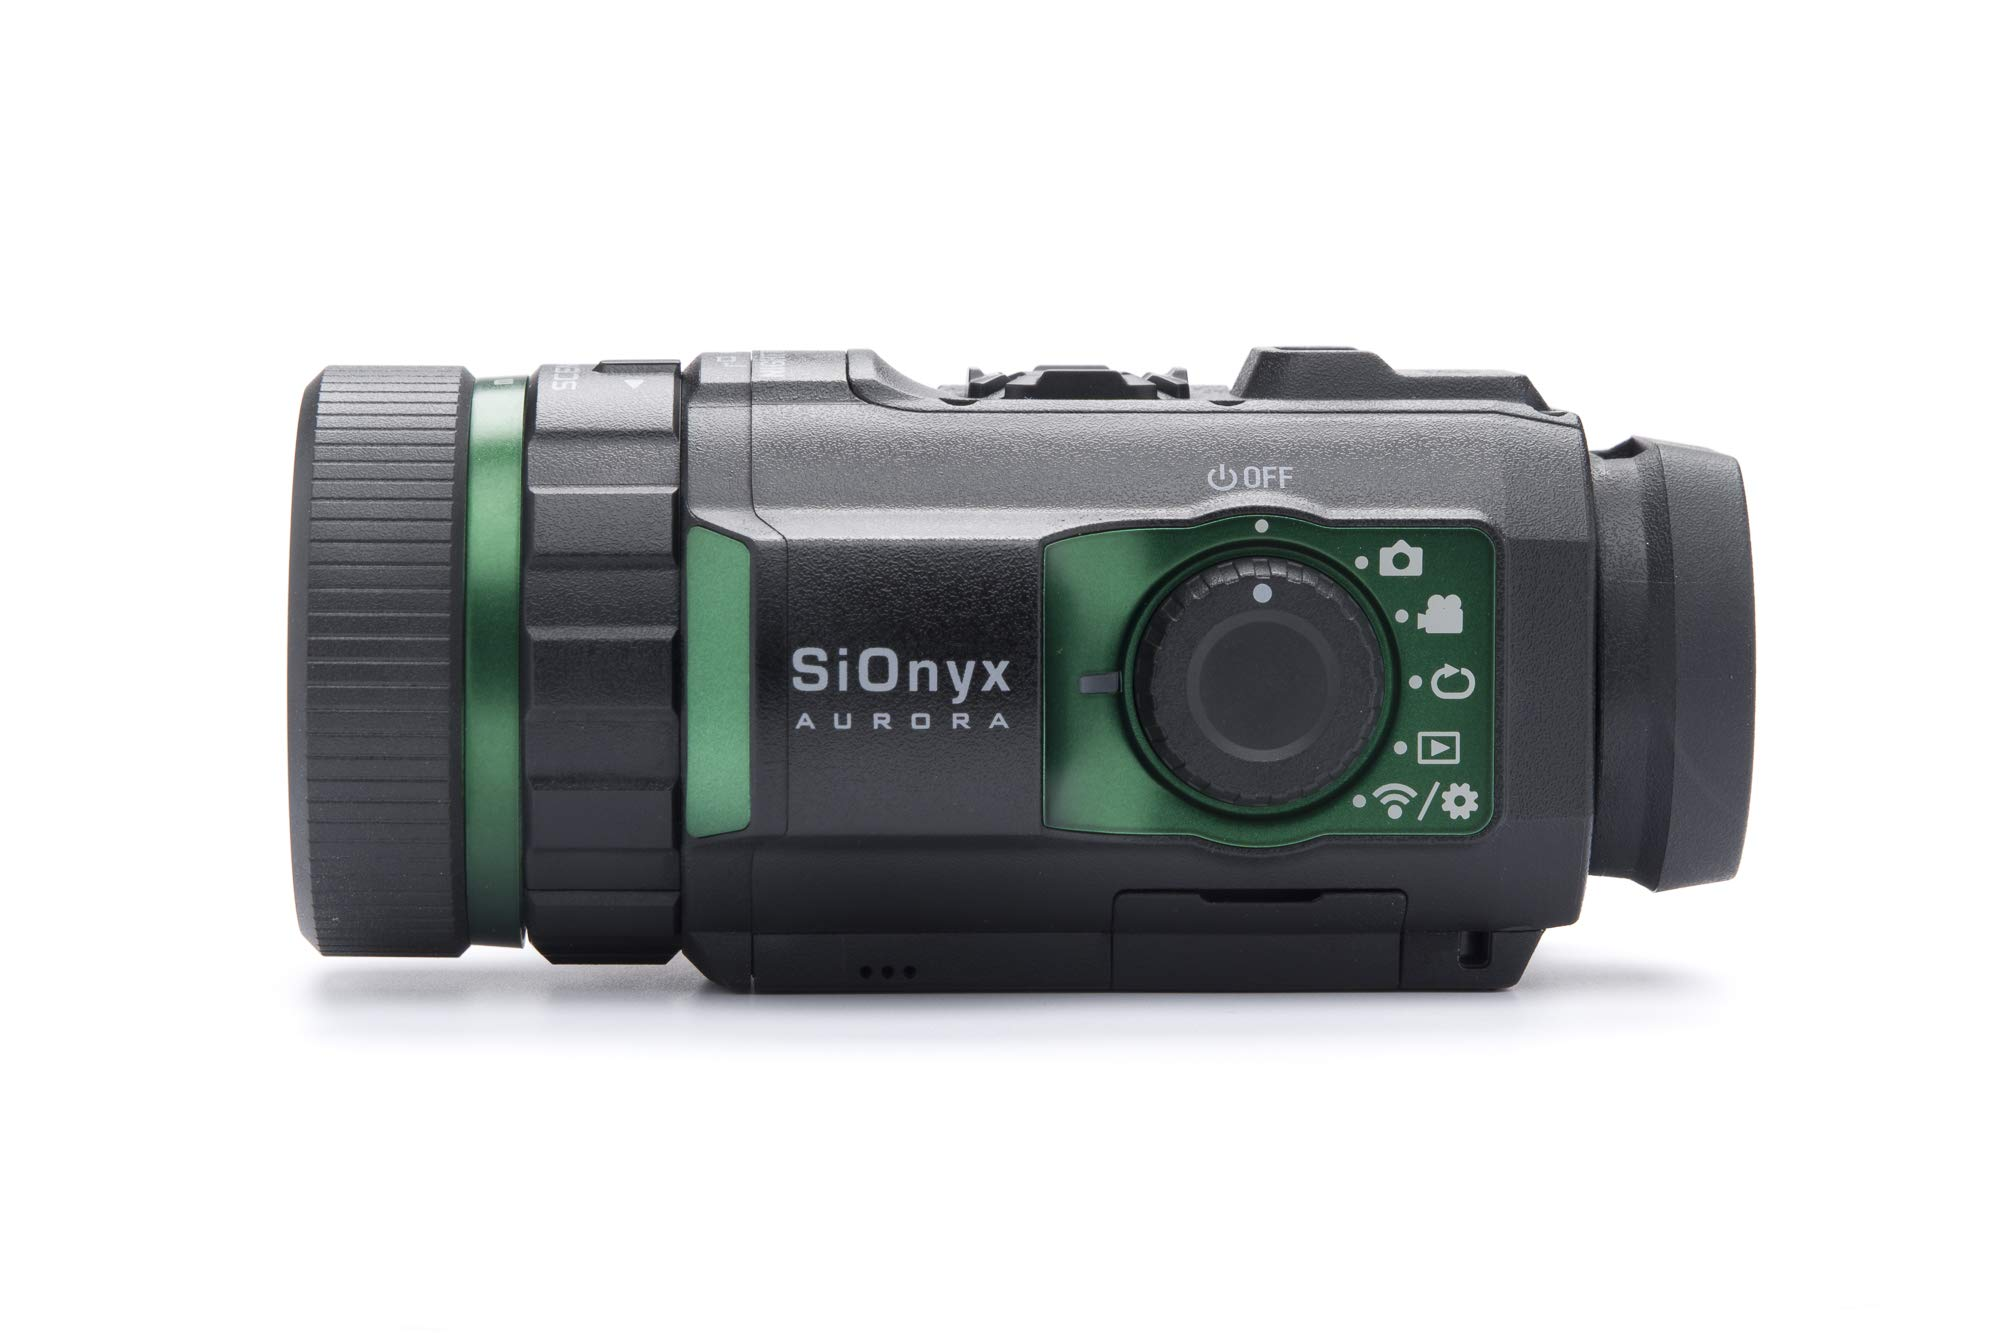 SiOnyx Aurora I Full-Color Digital Night Vision Camera I Ultra Low-Light IR Sensor Technology I Weapon Rated, Water Resistant, WiFi, Compass & GPS Capable. Infrared Night Vision Monocular.